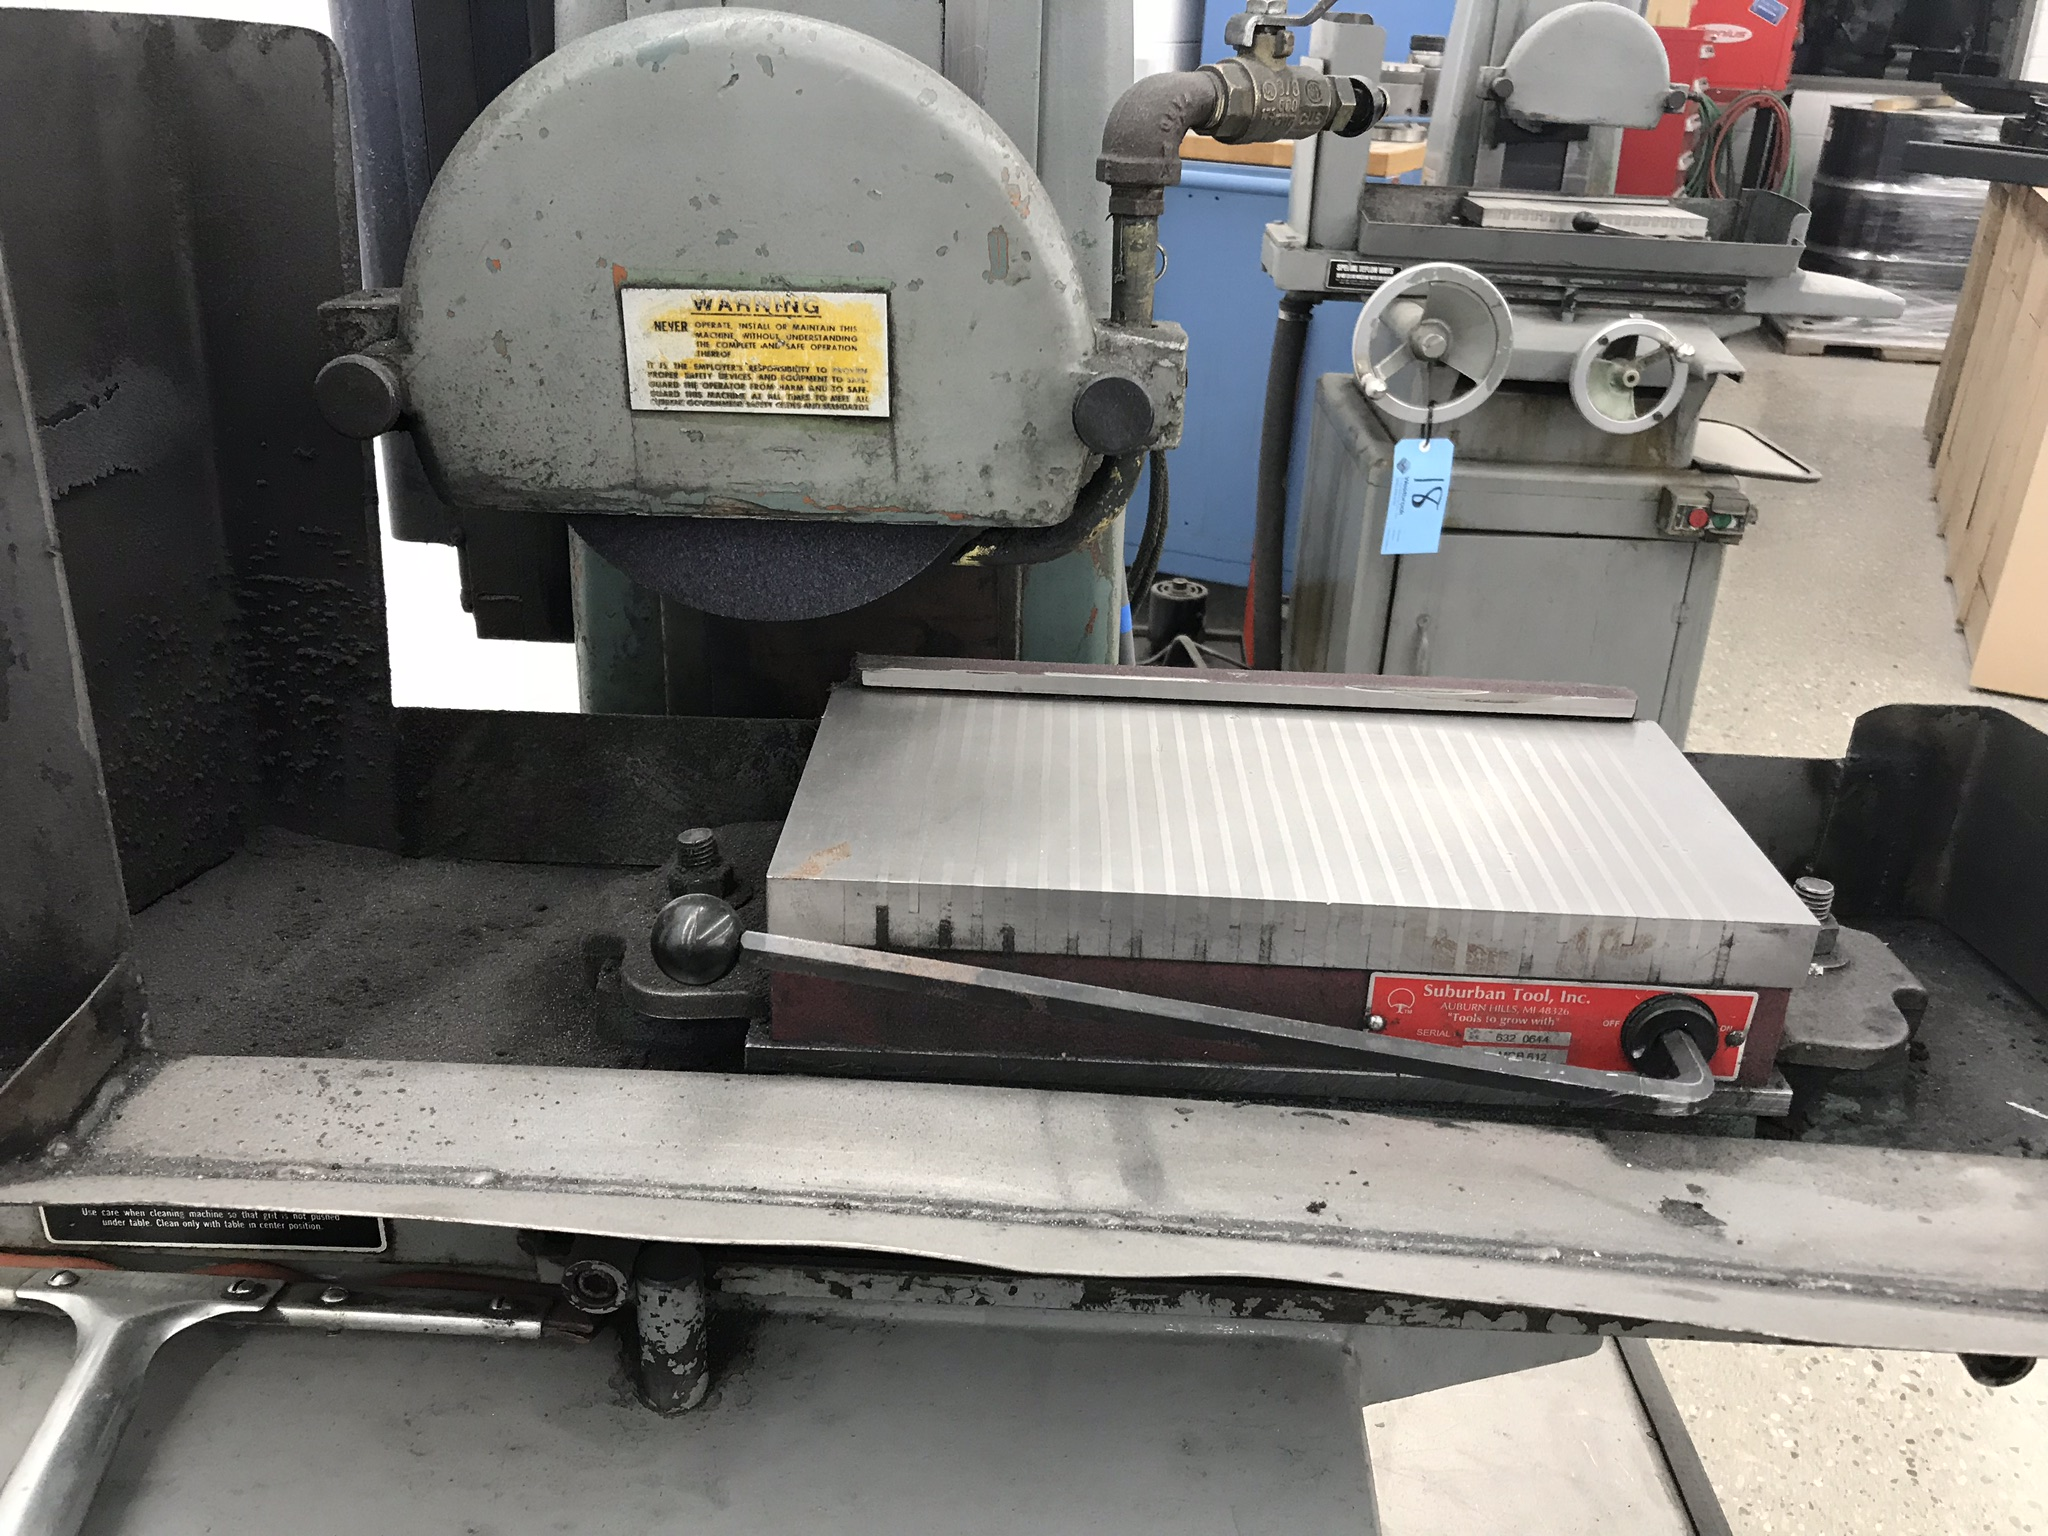 """Harig Super 612 6"""" x 12"""" Surface Grinder with Scales for X, Y DRO. 6"""" x 12"""" Permanent Magnetic Chuck - Image 2 of 4"""